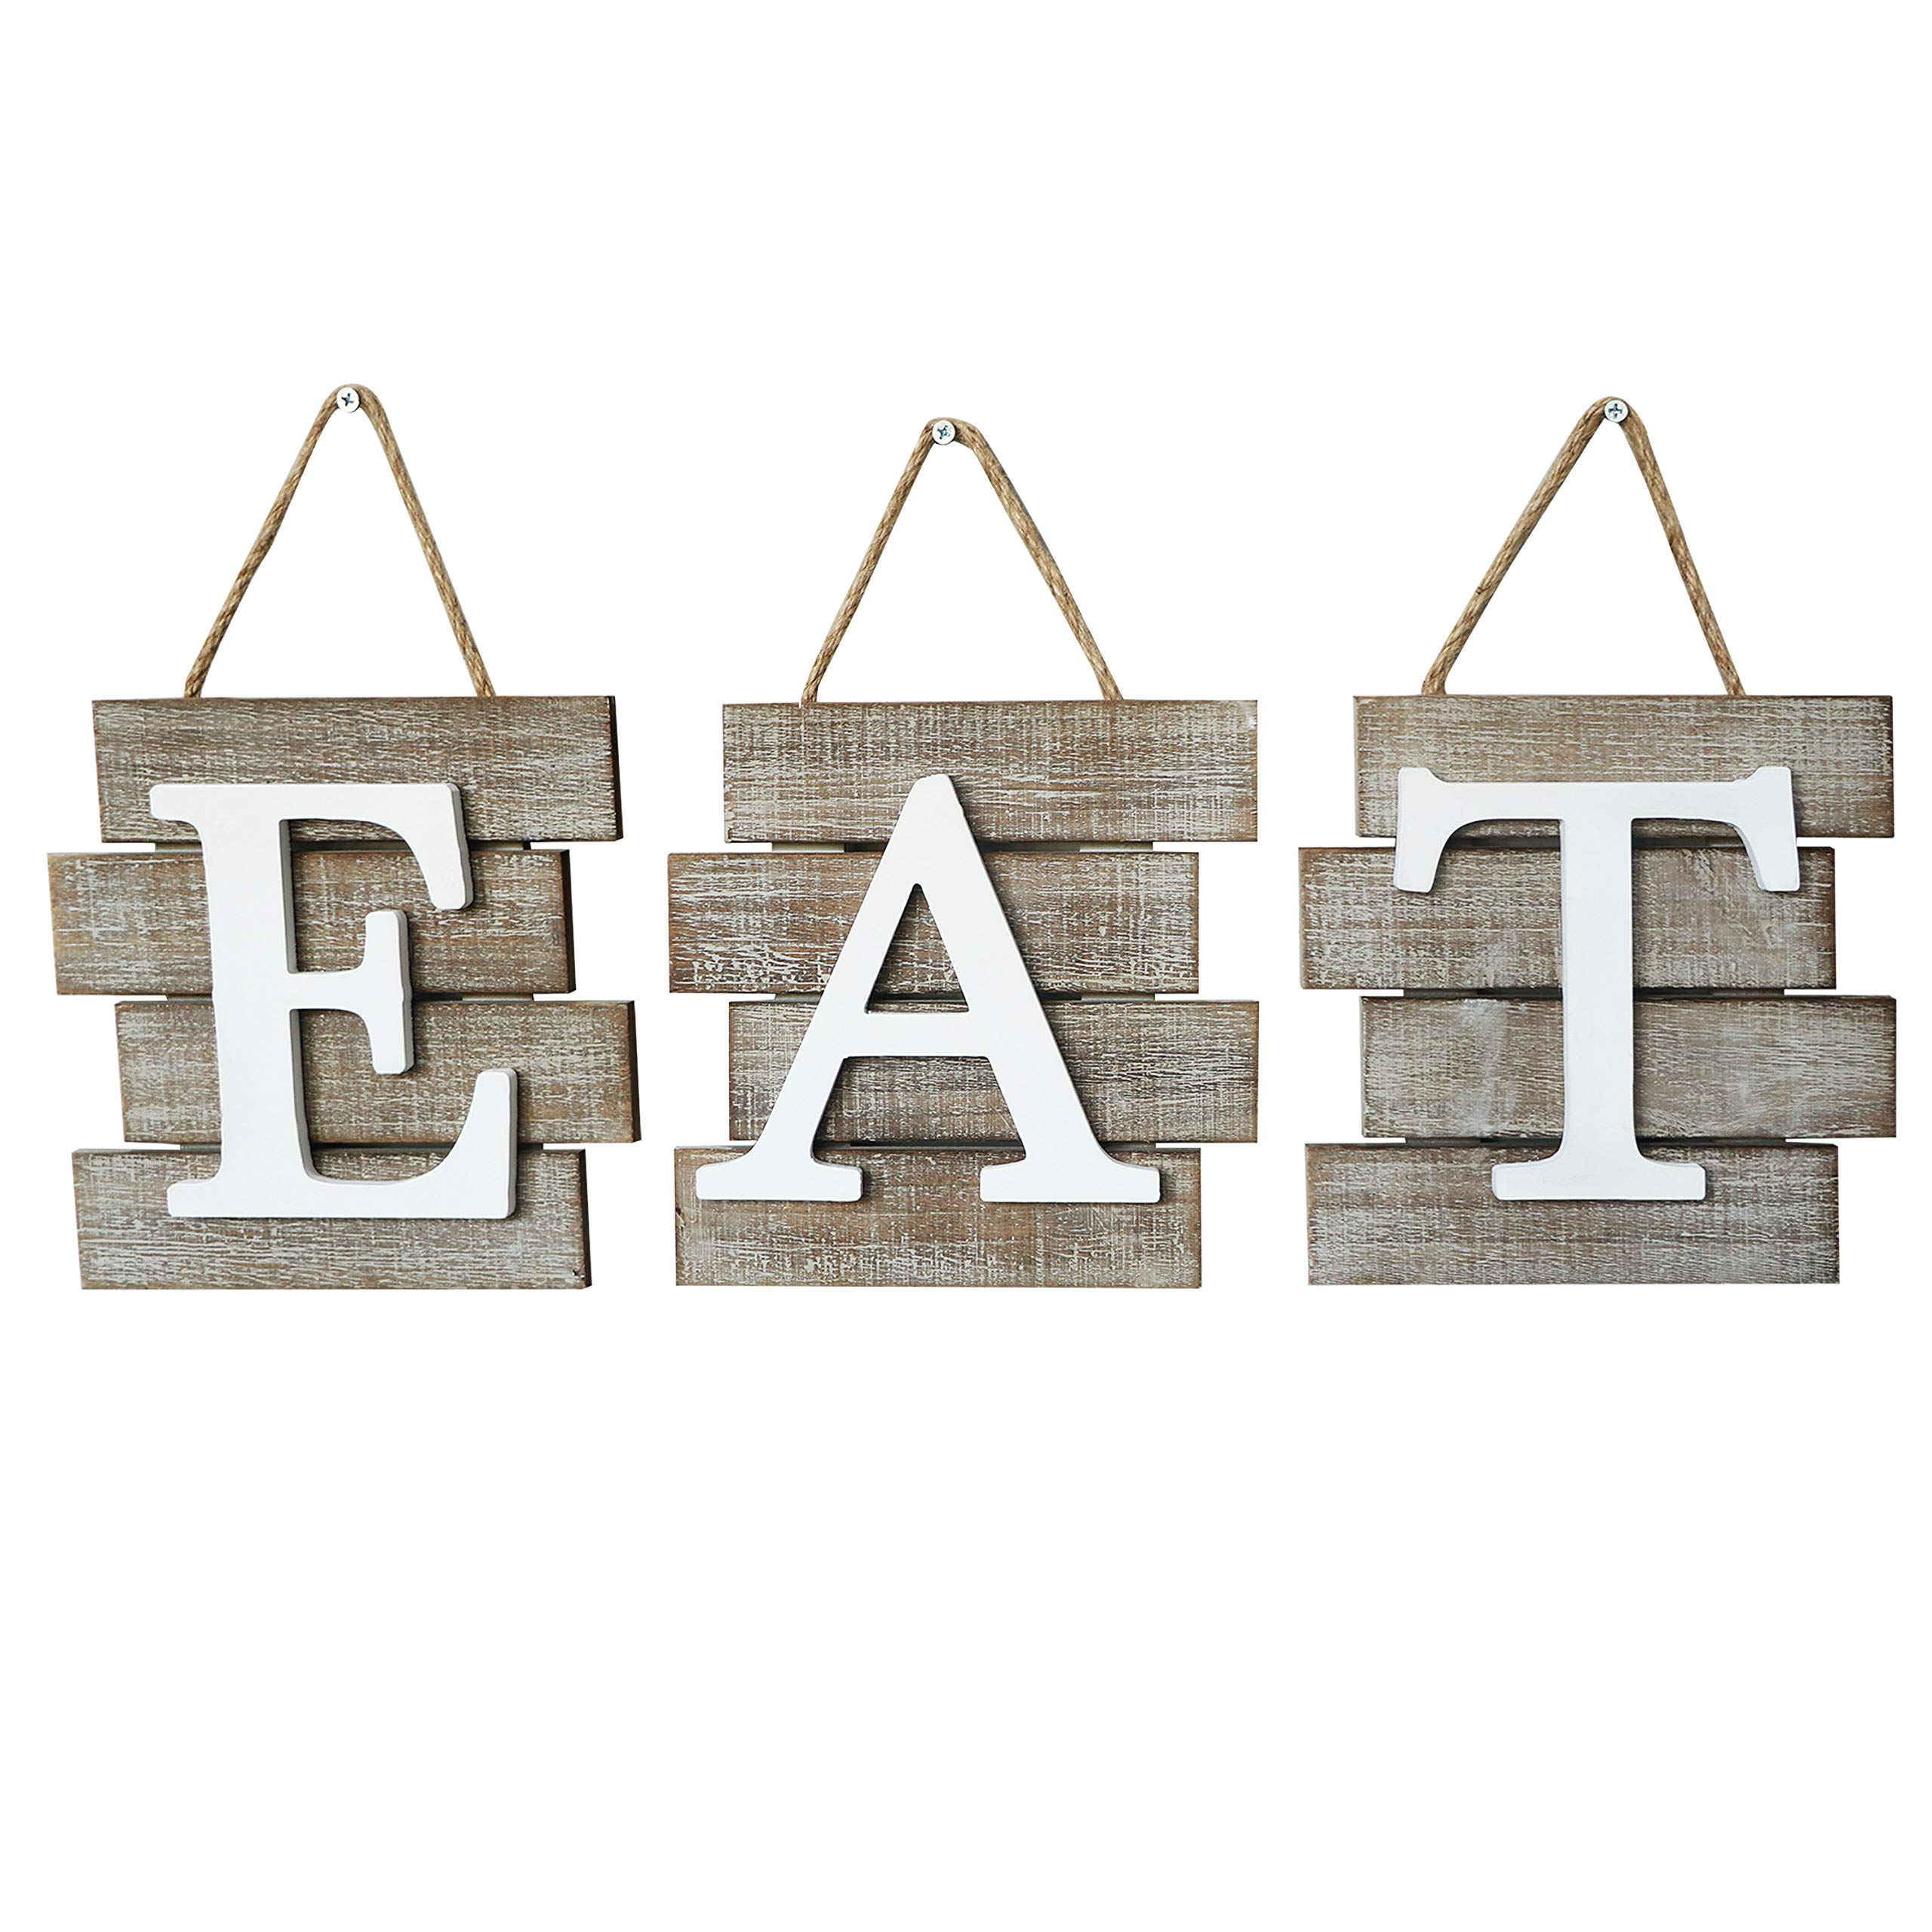 Barnyard Designs Eat Sign Wall Decor for Kitchen and Home, Distressed Natural, Rustic Farmhouse Country Decorative Wall Art 24'' x 8""